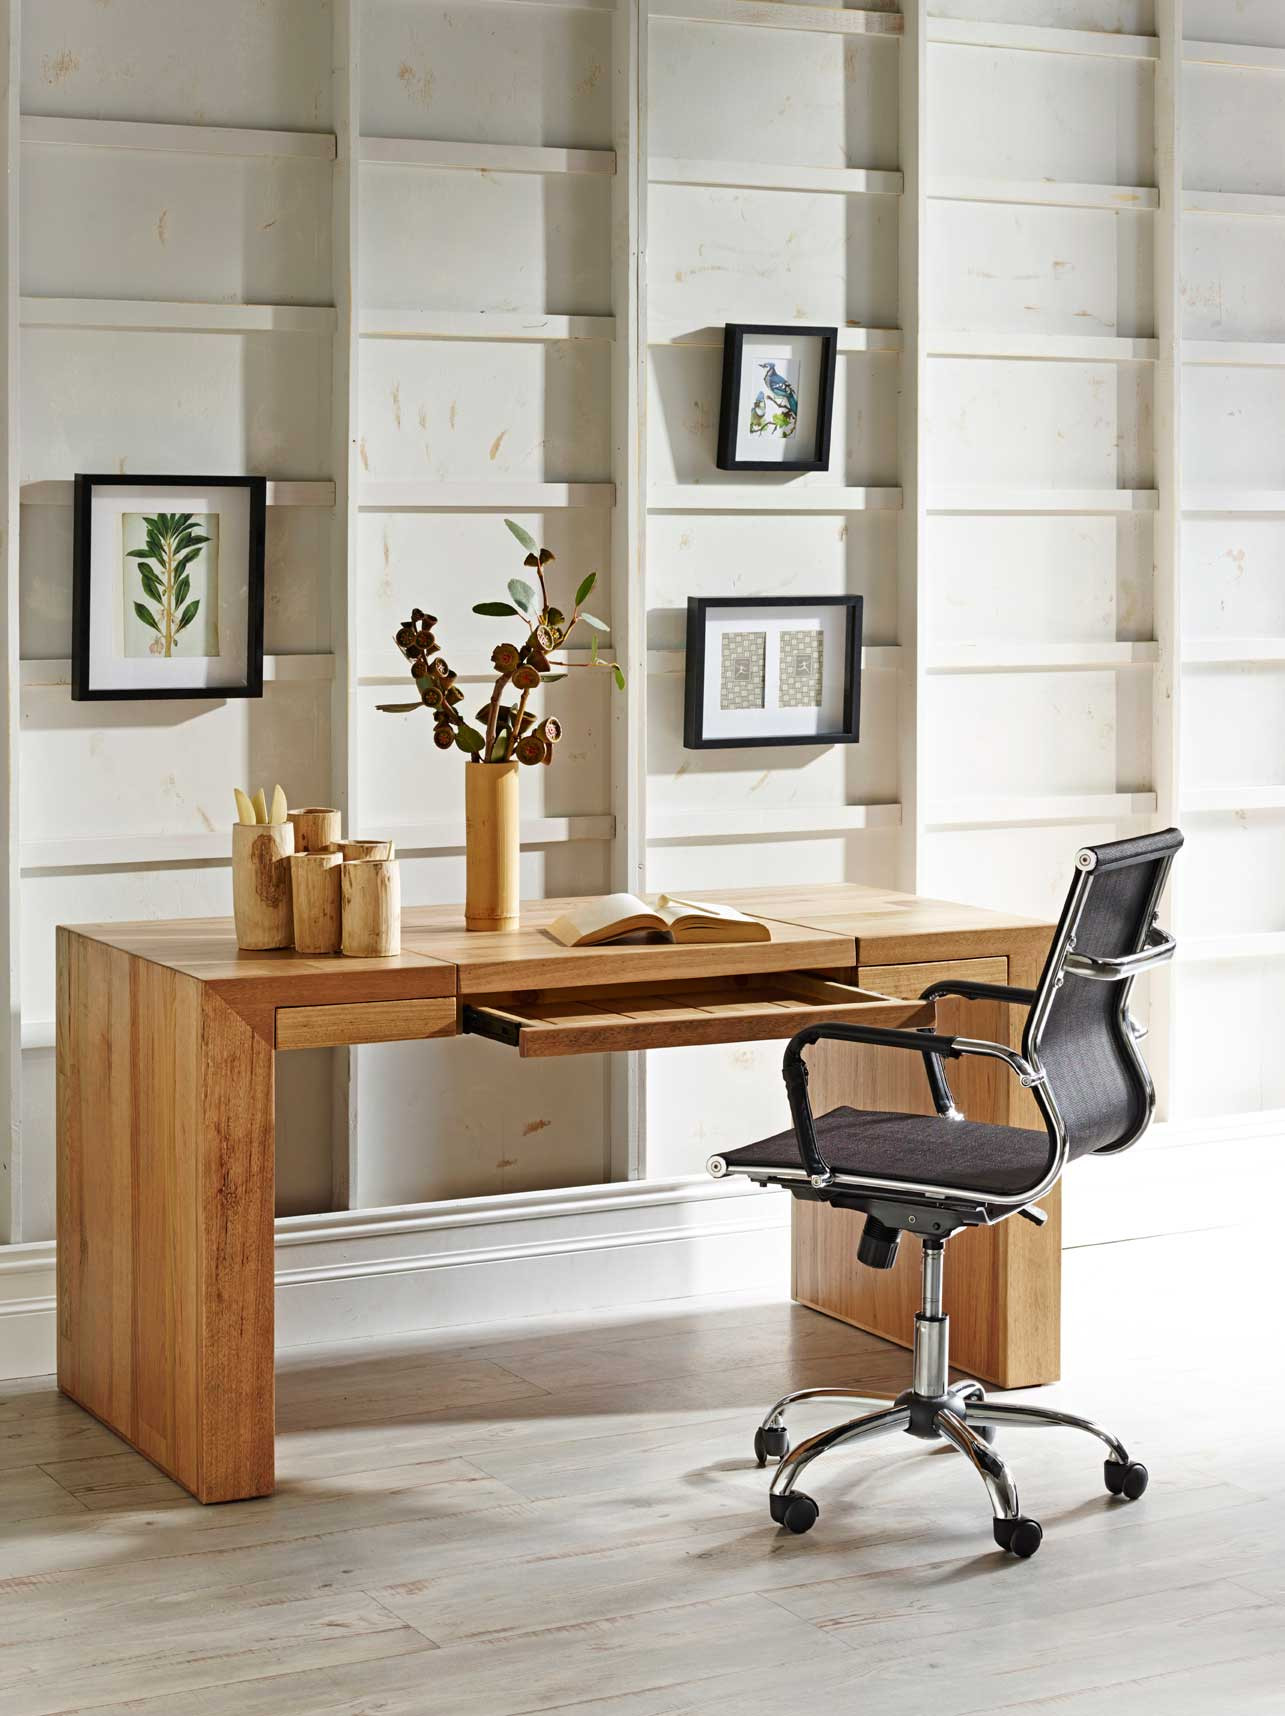 Best ideas about Small Office Furniture . Save or Pin Small fice Design in Lovely and Cheerful Nuance Amaza Now.